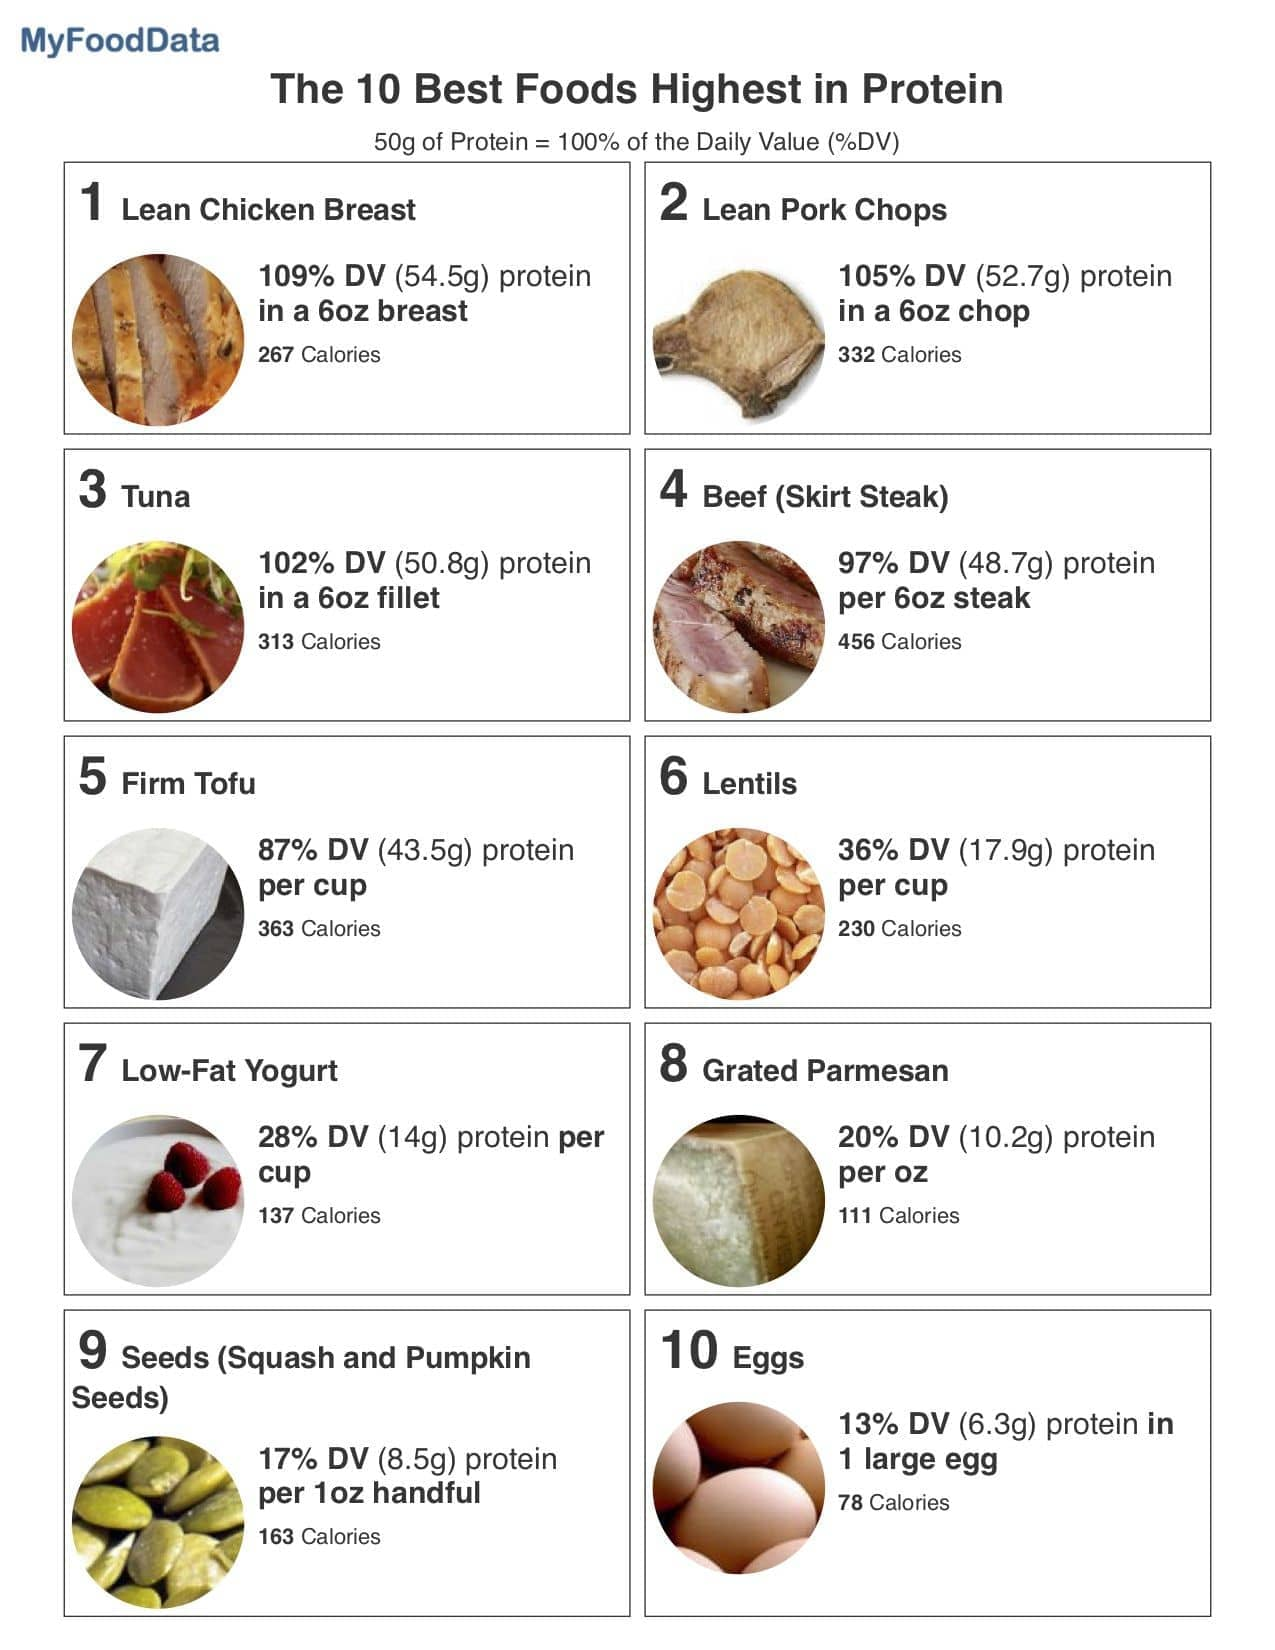 A printable list of the top 10 foods highest in protein.